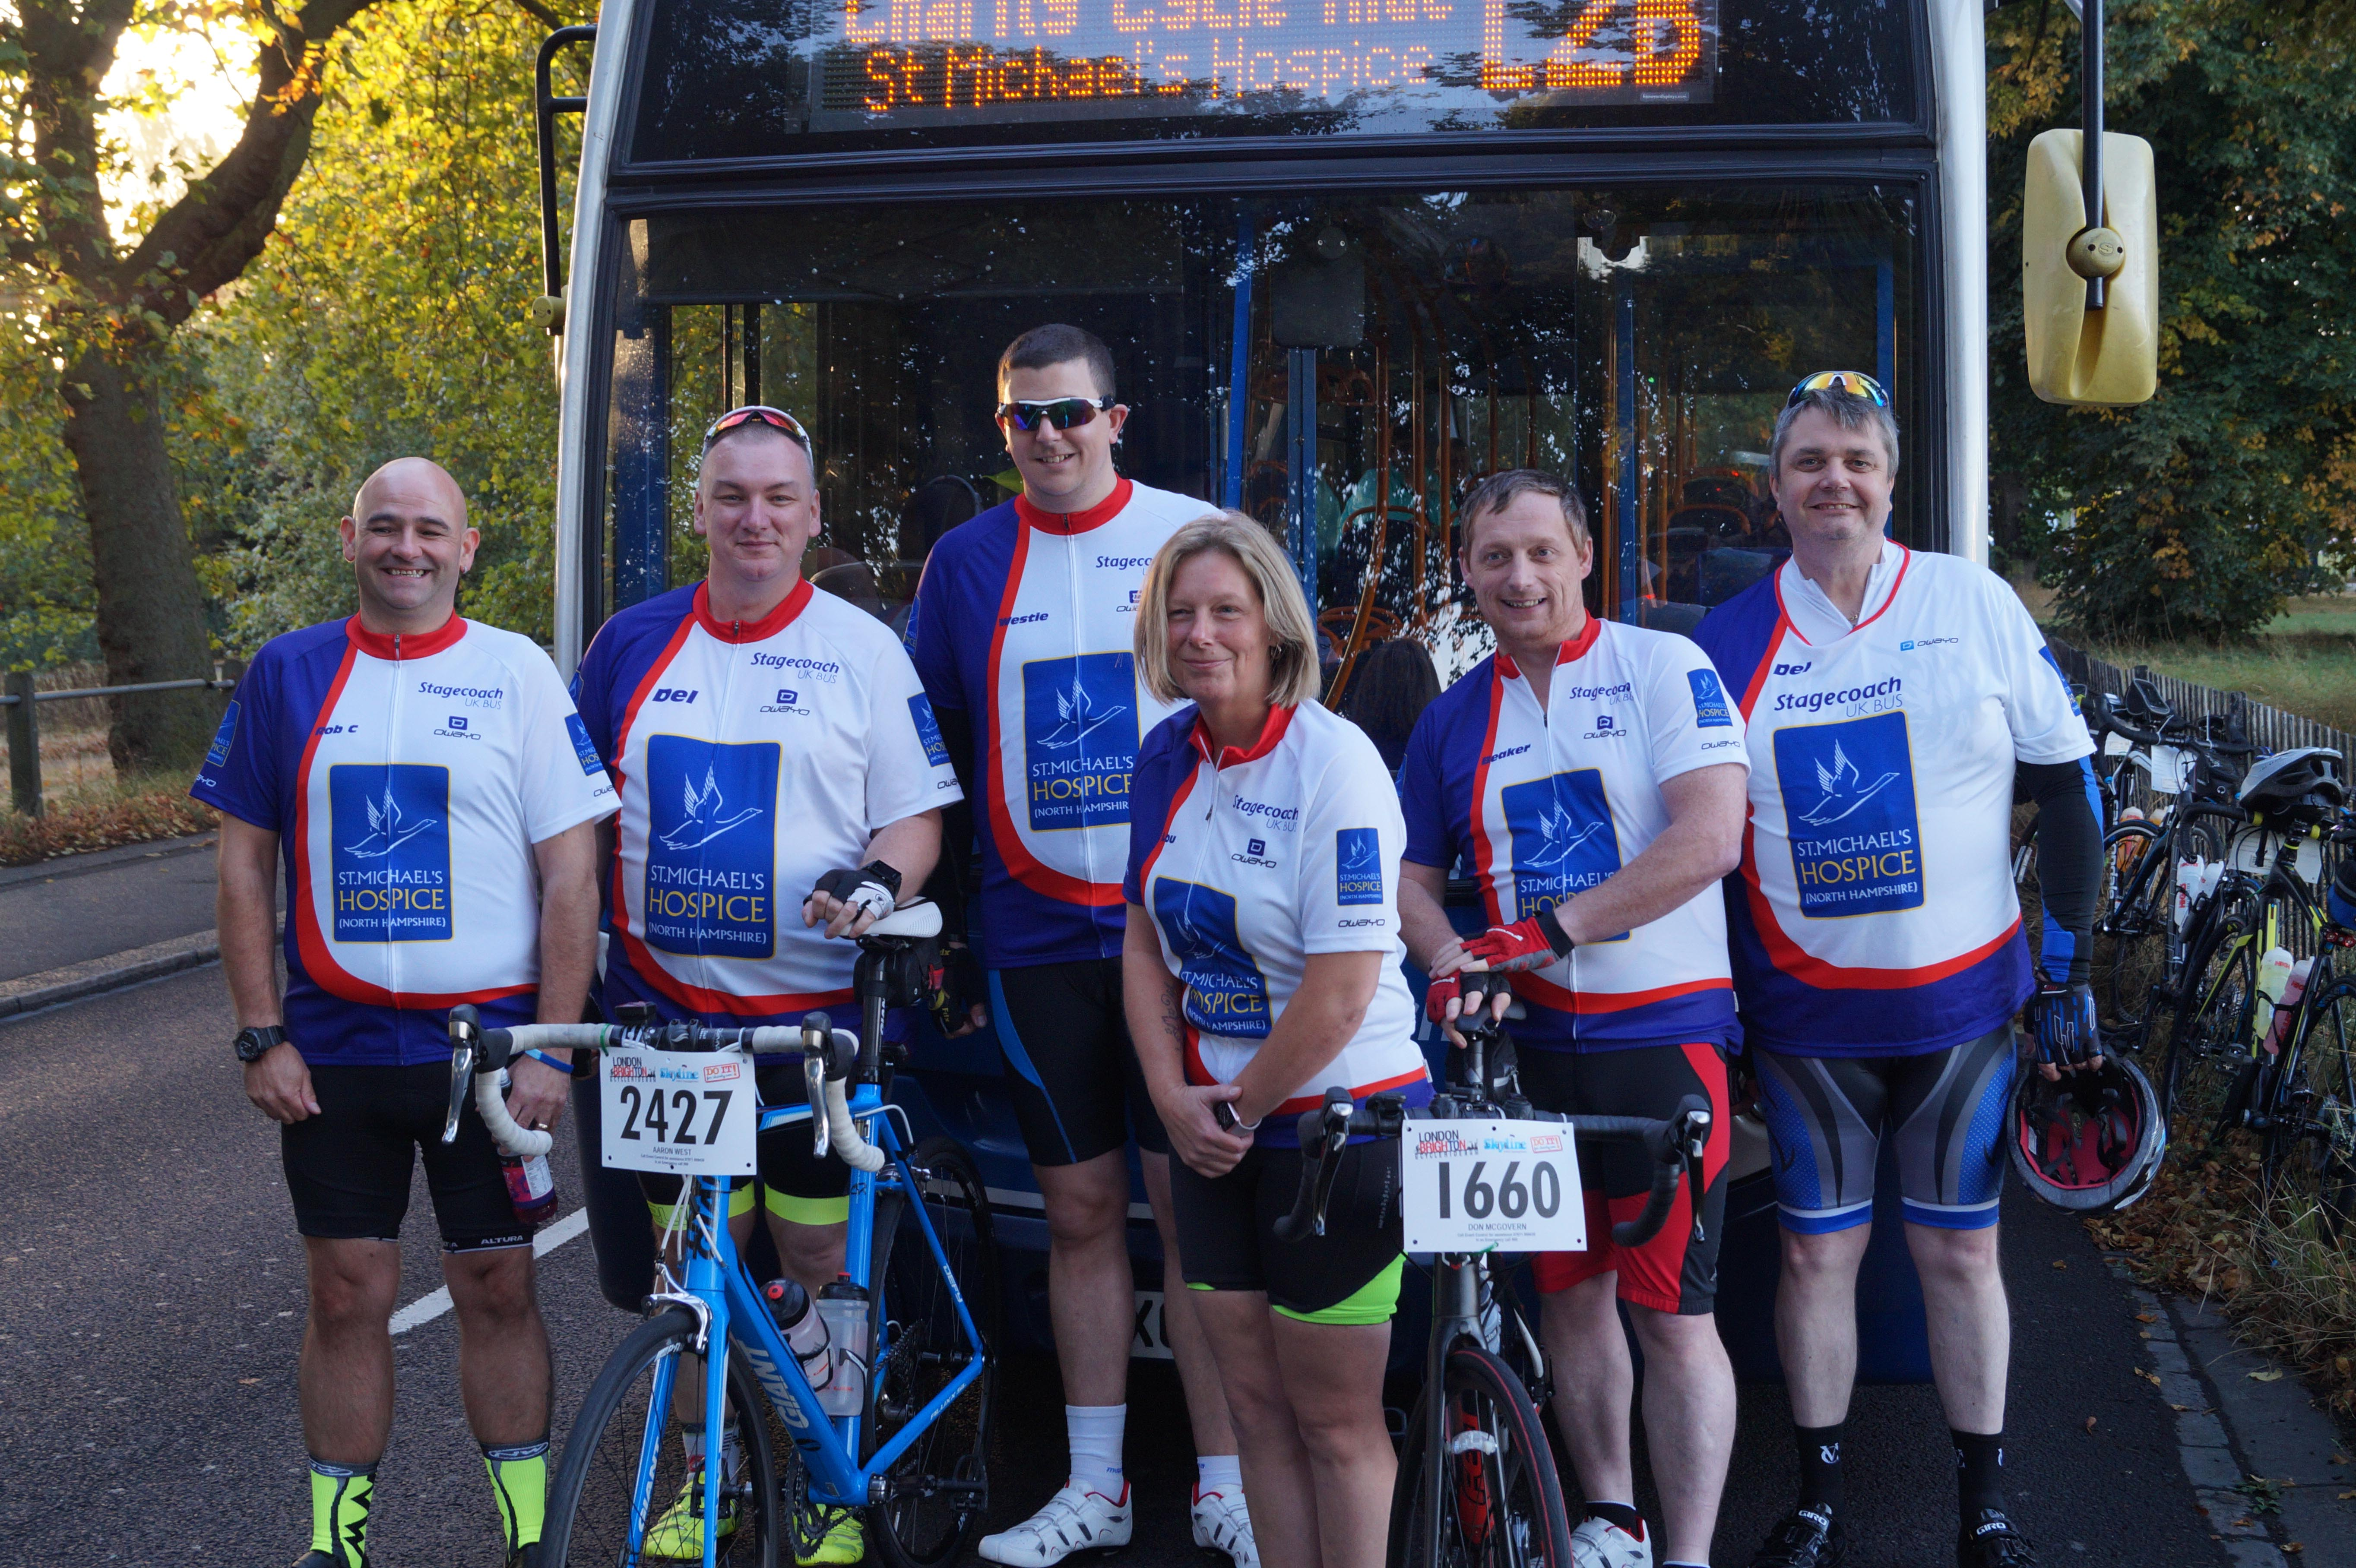 Basingstoke cycle team